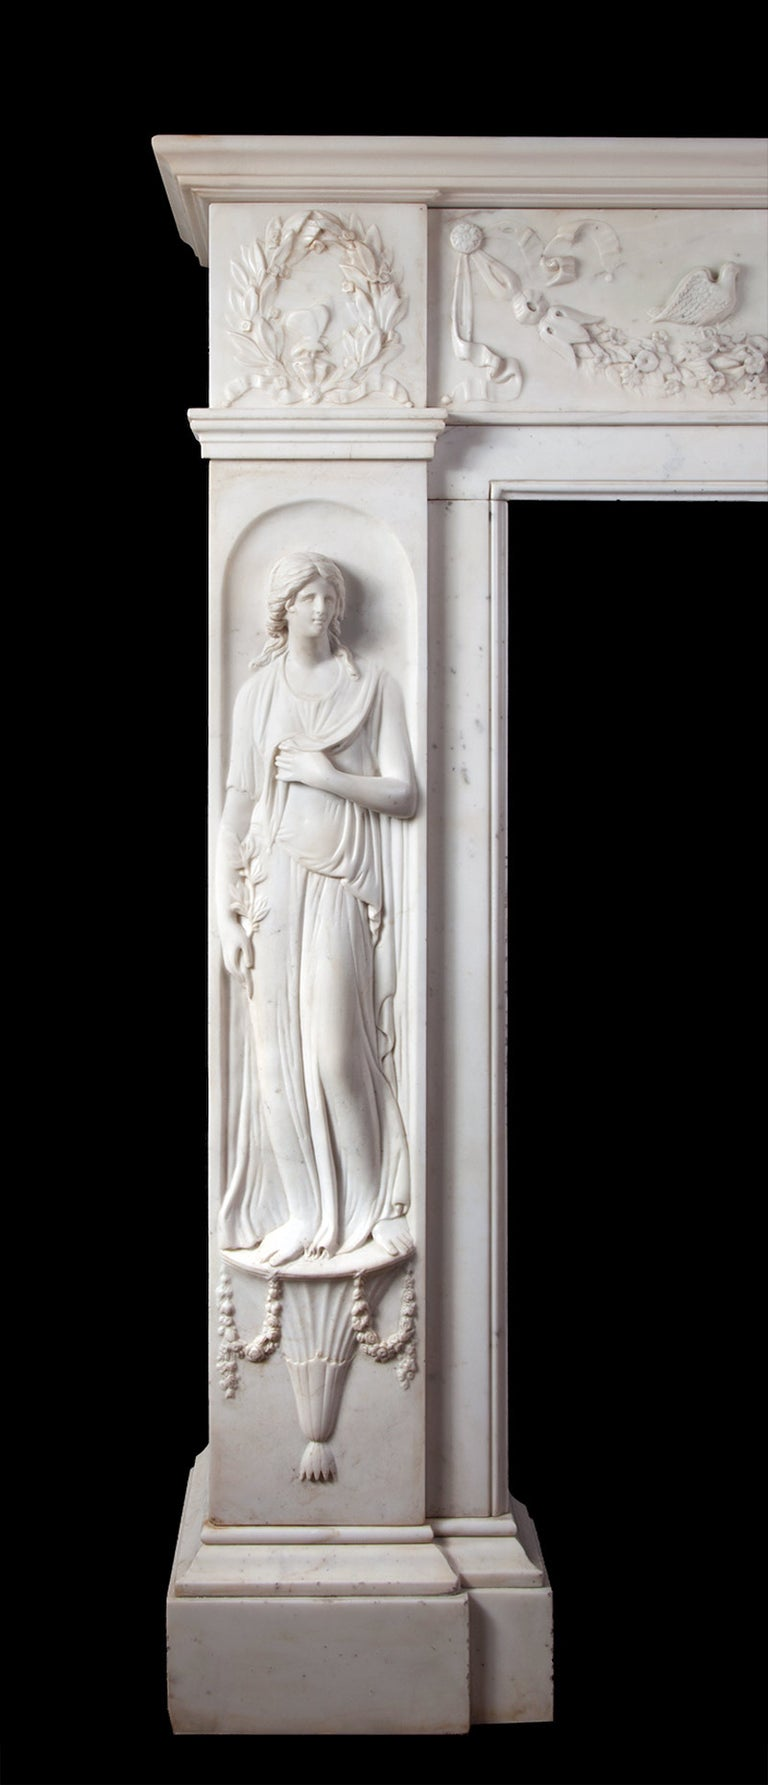 The rectangular moulded shelf sits above a frieze centred by an oval relief depicting Aphrodite and Cupid. To either side are swags of flowers with two dove birds resting. The jambs are of classical robed female figures, one with an olive branch and